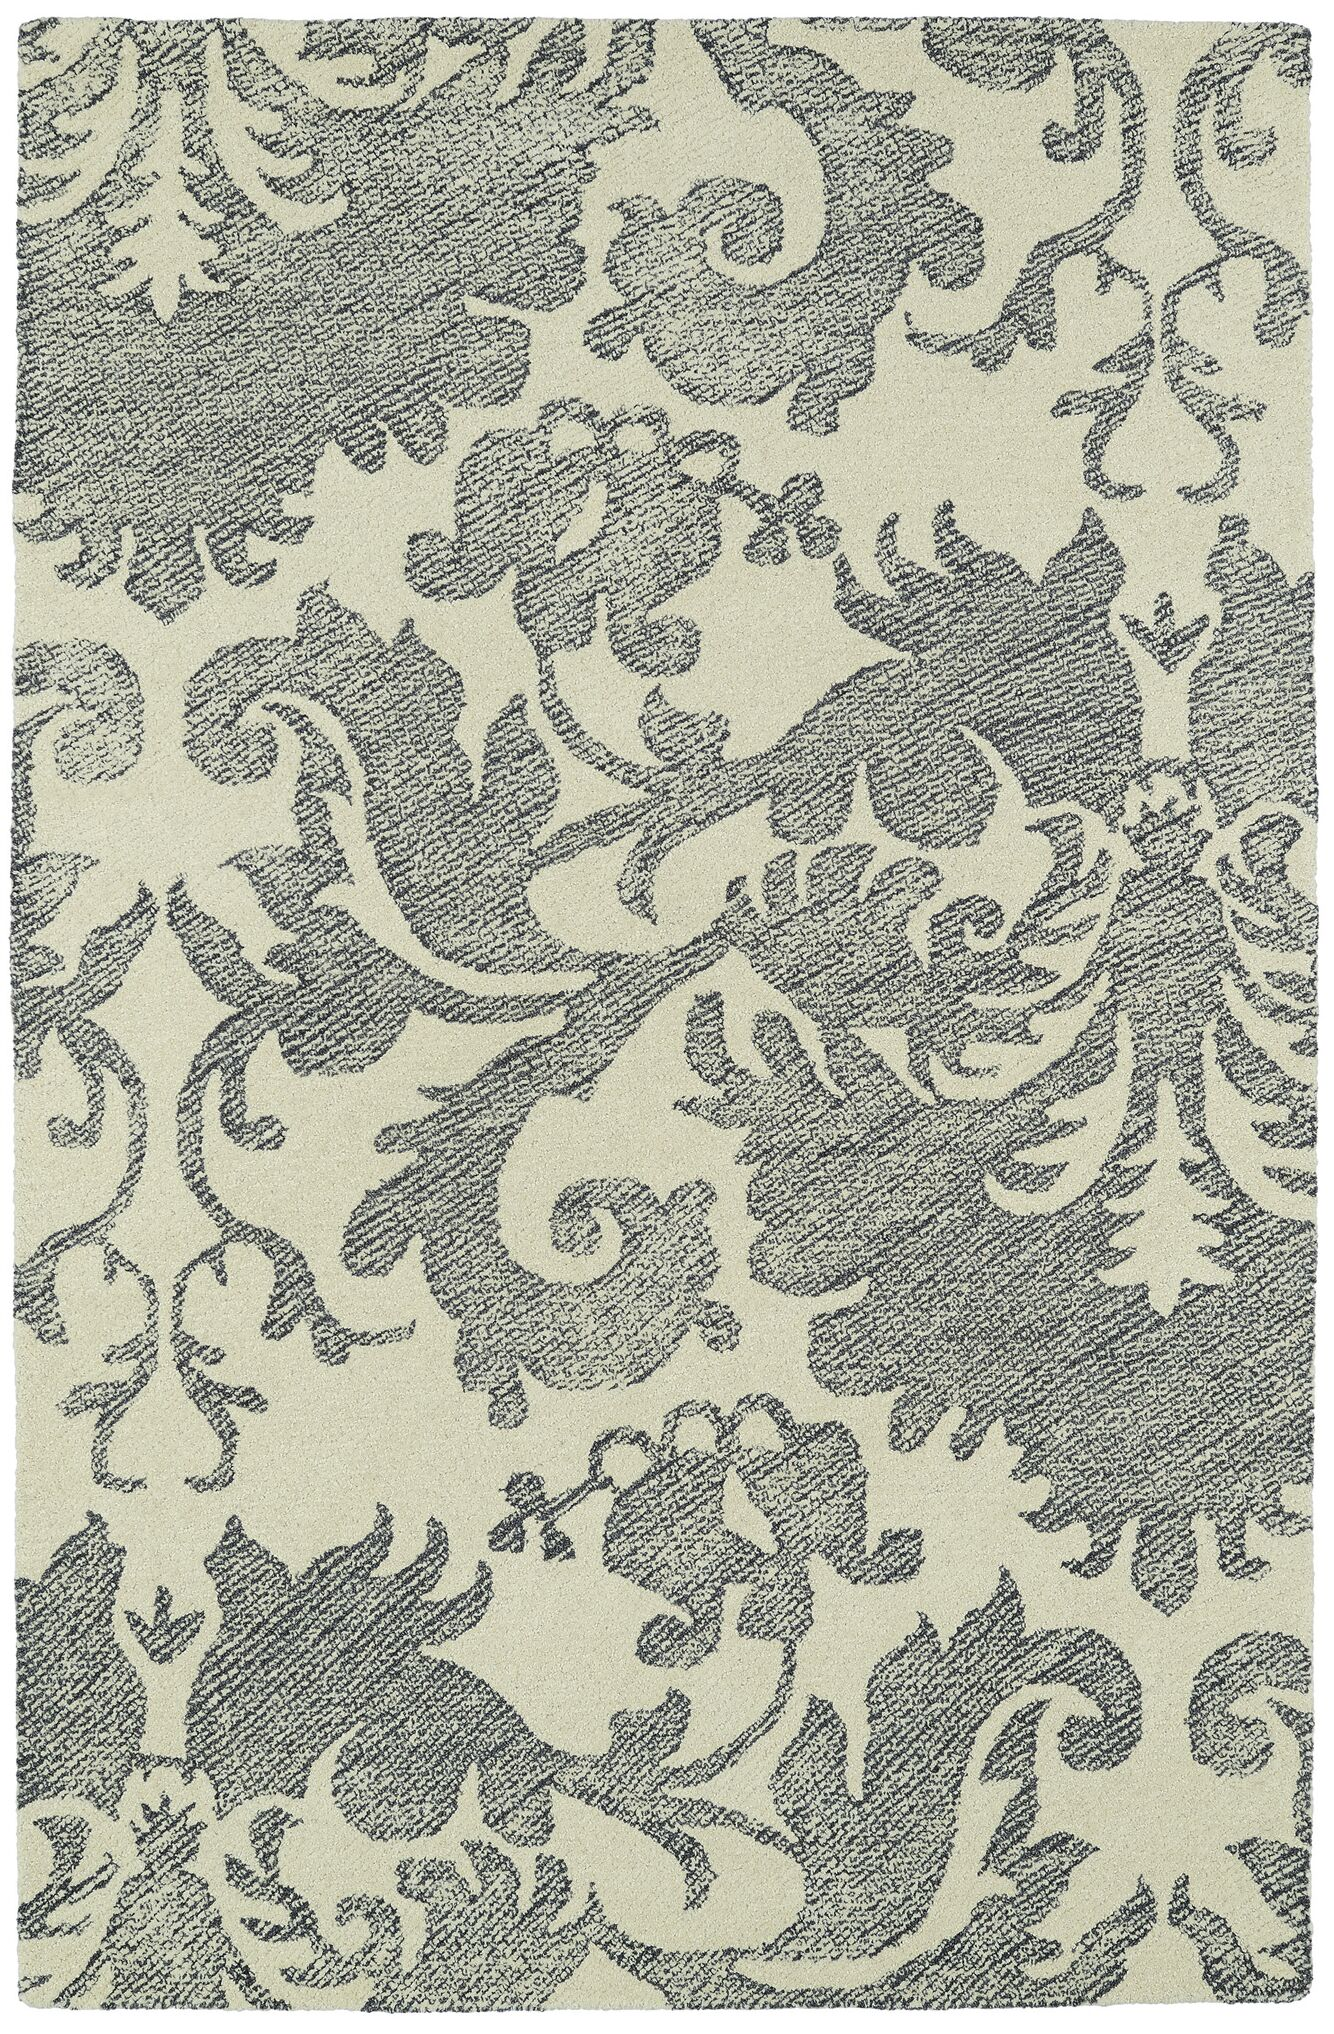 Rosalind Hand-Tufted Wool Beige/Gray Area Rug Rug Size: Rectangle 9' x 12'